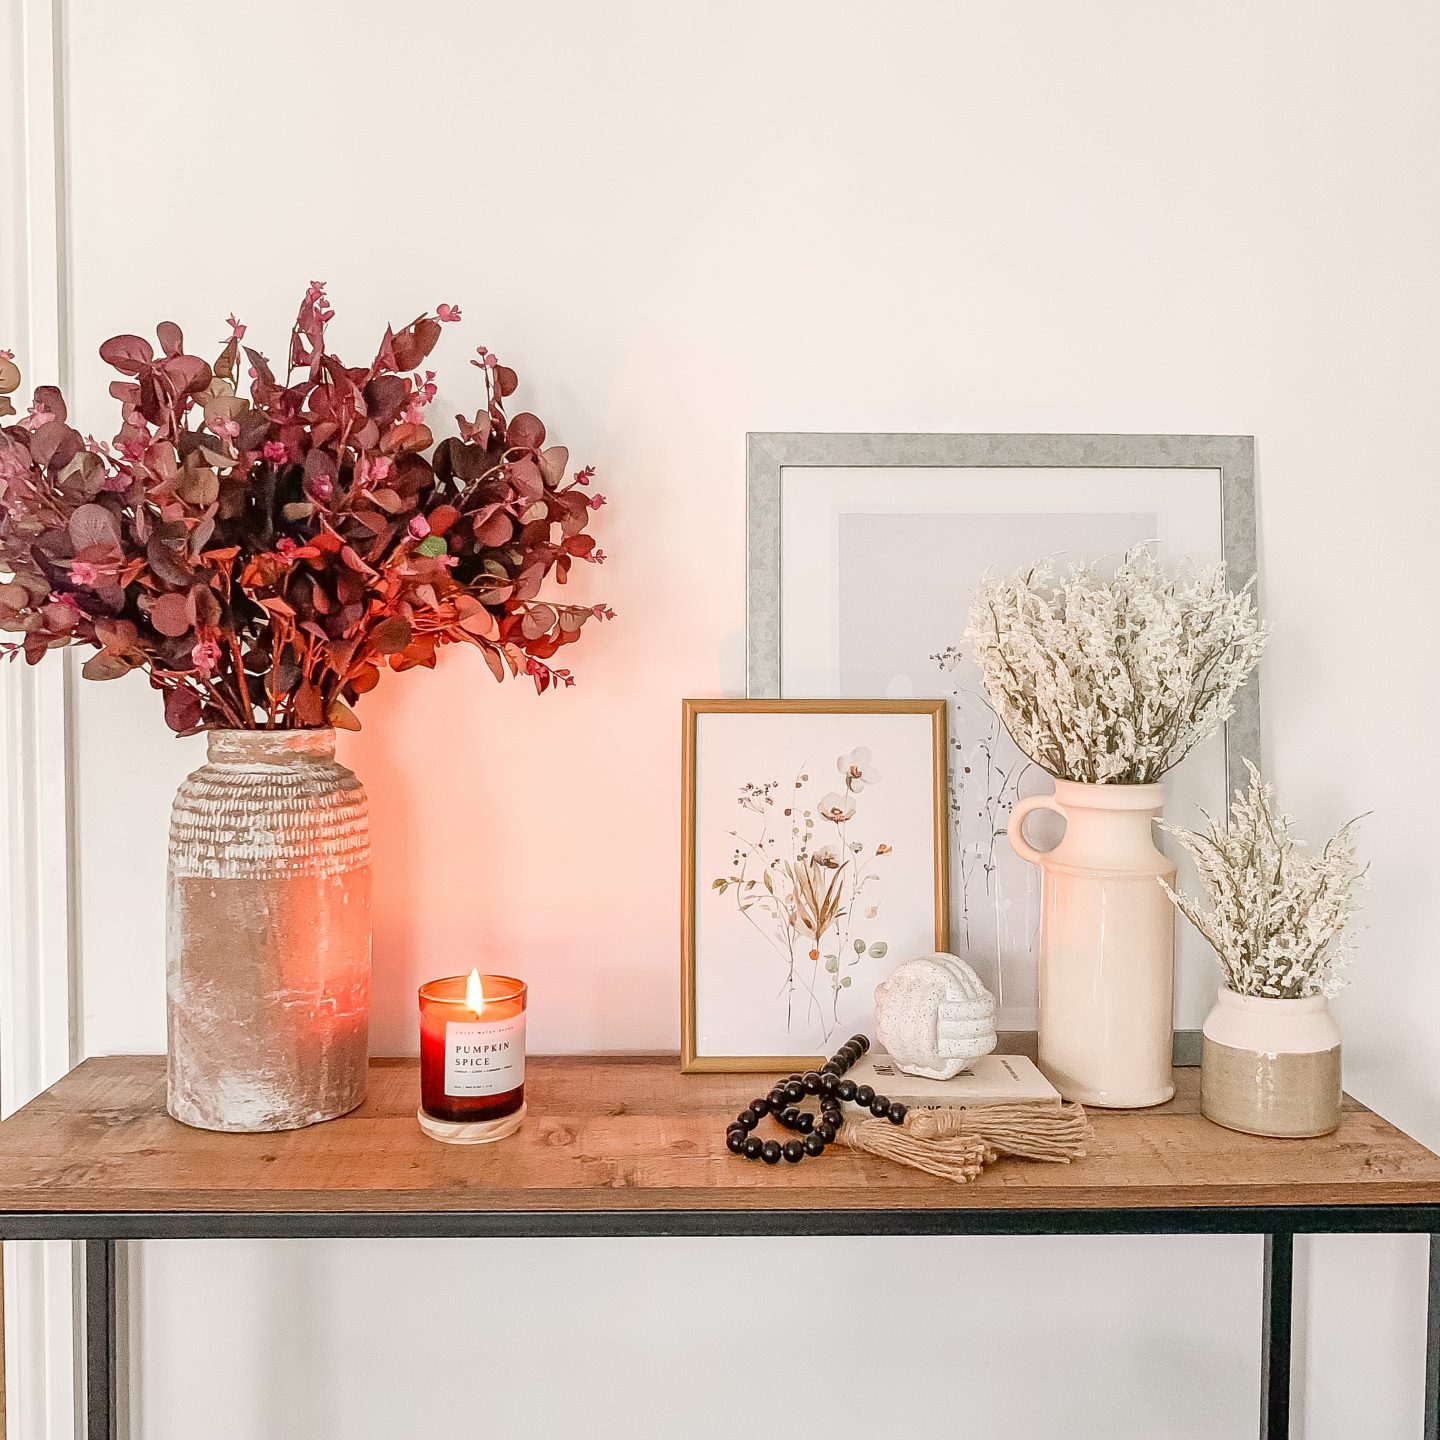 HYGGE: WHAT IS IT AND HOW CAN YOU EMBRACE IT THIS AUTUMN WINTER?